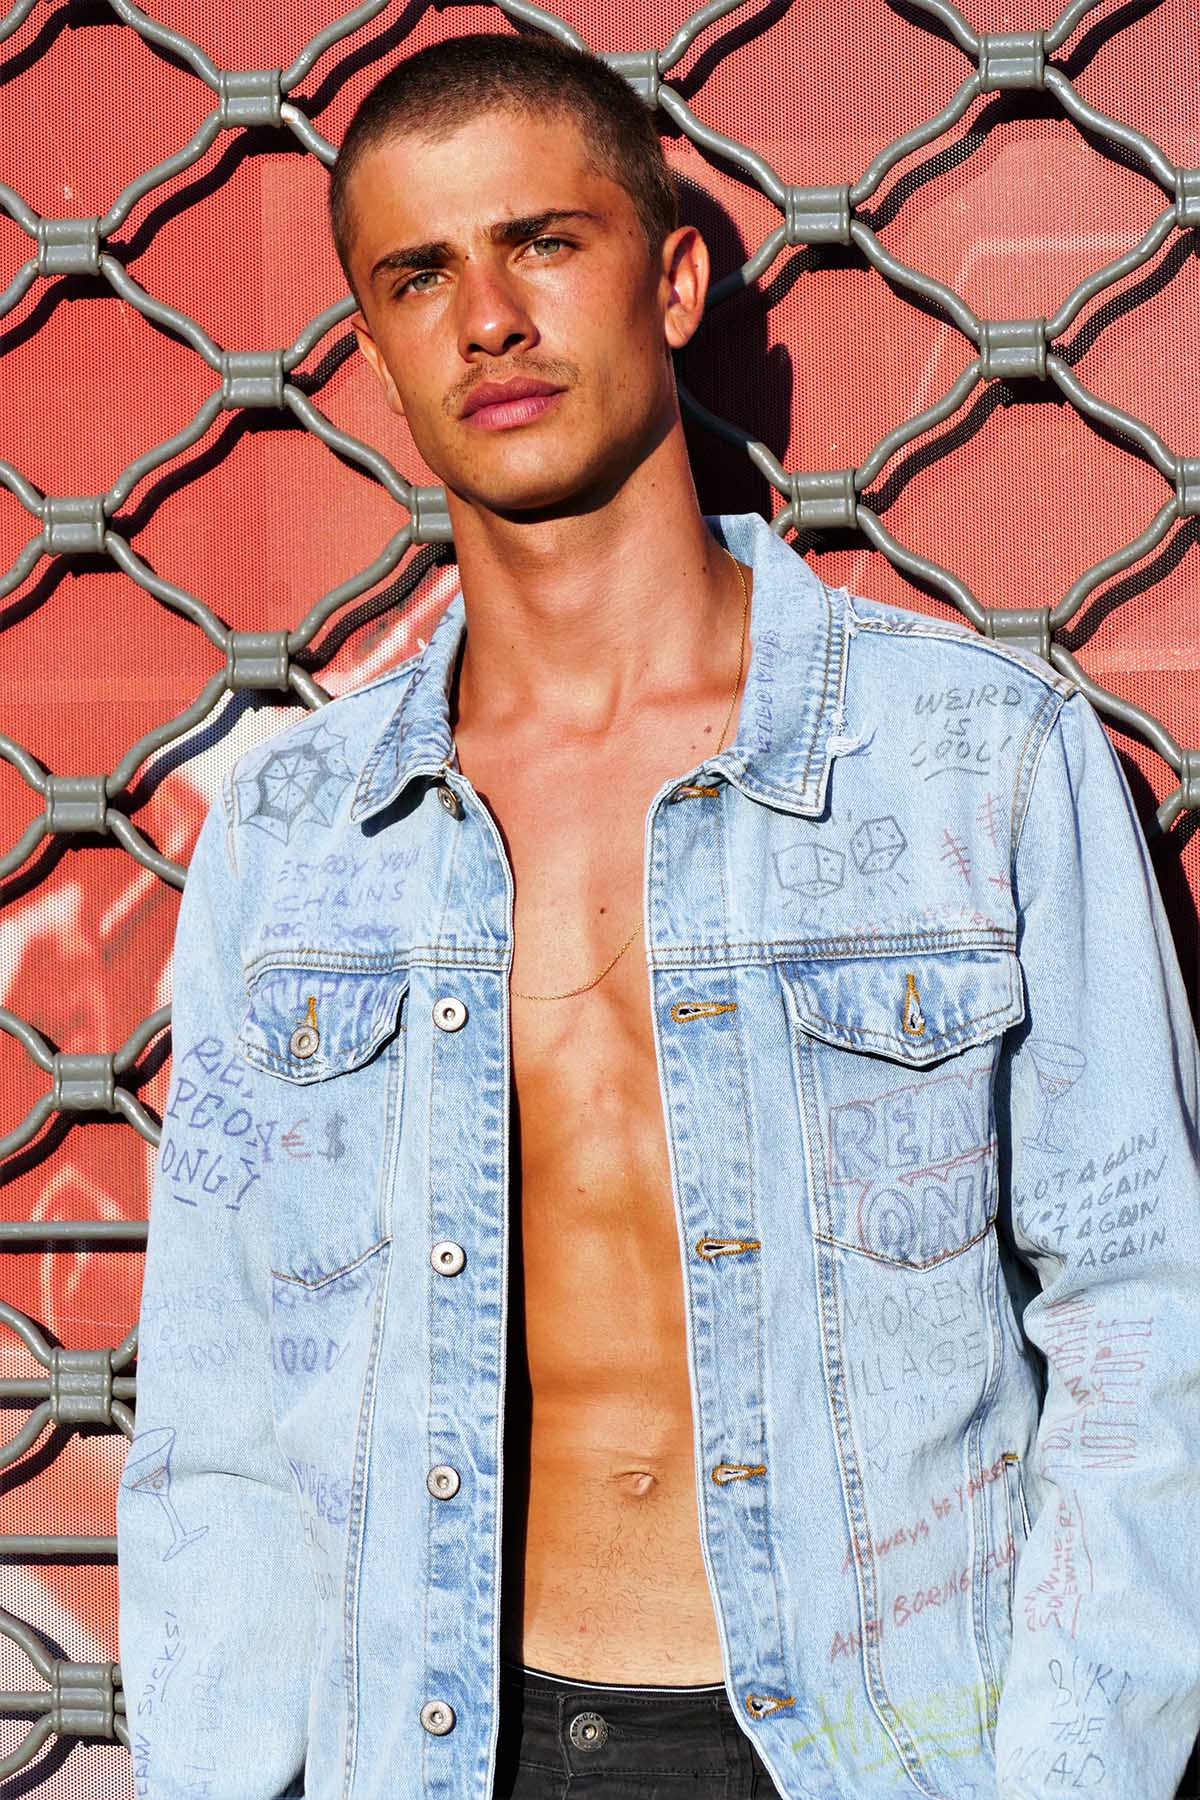 Aran Buenno by Hans Weiser for Brazilian Male Model